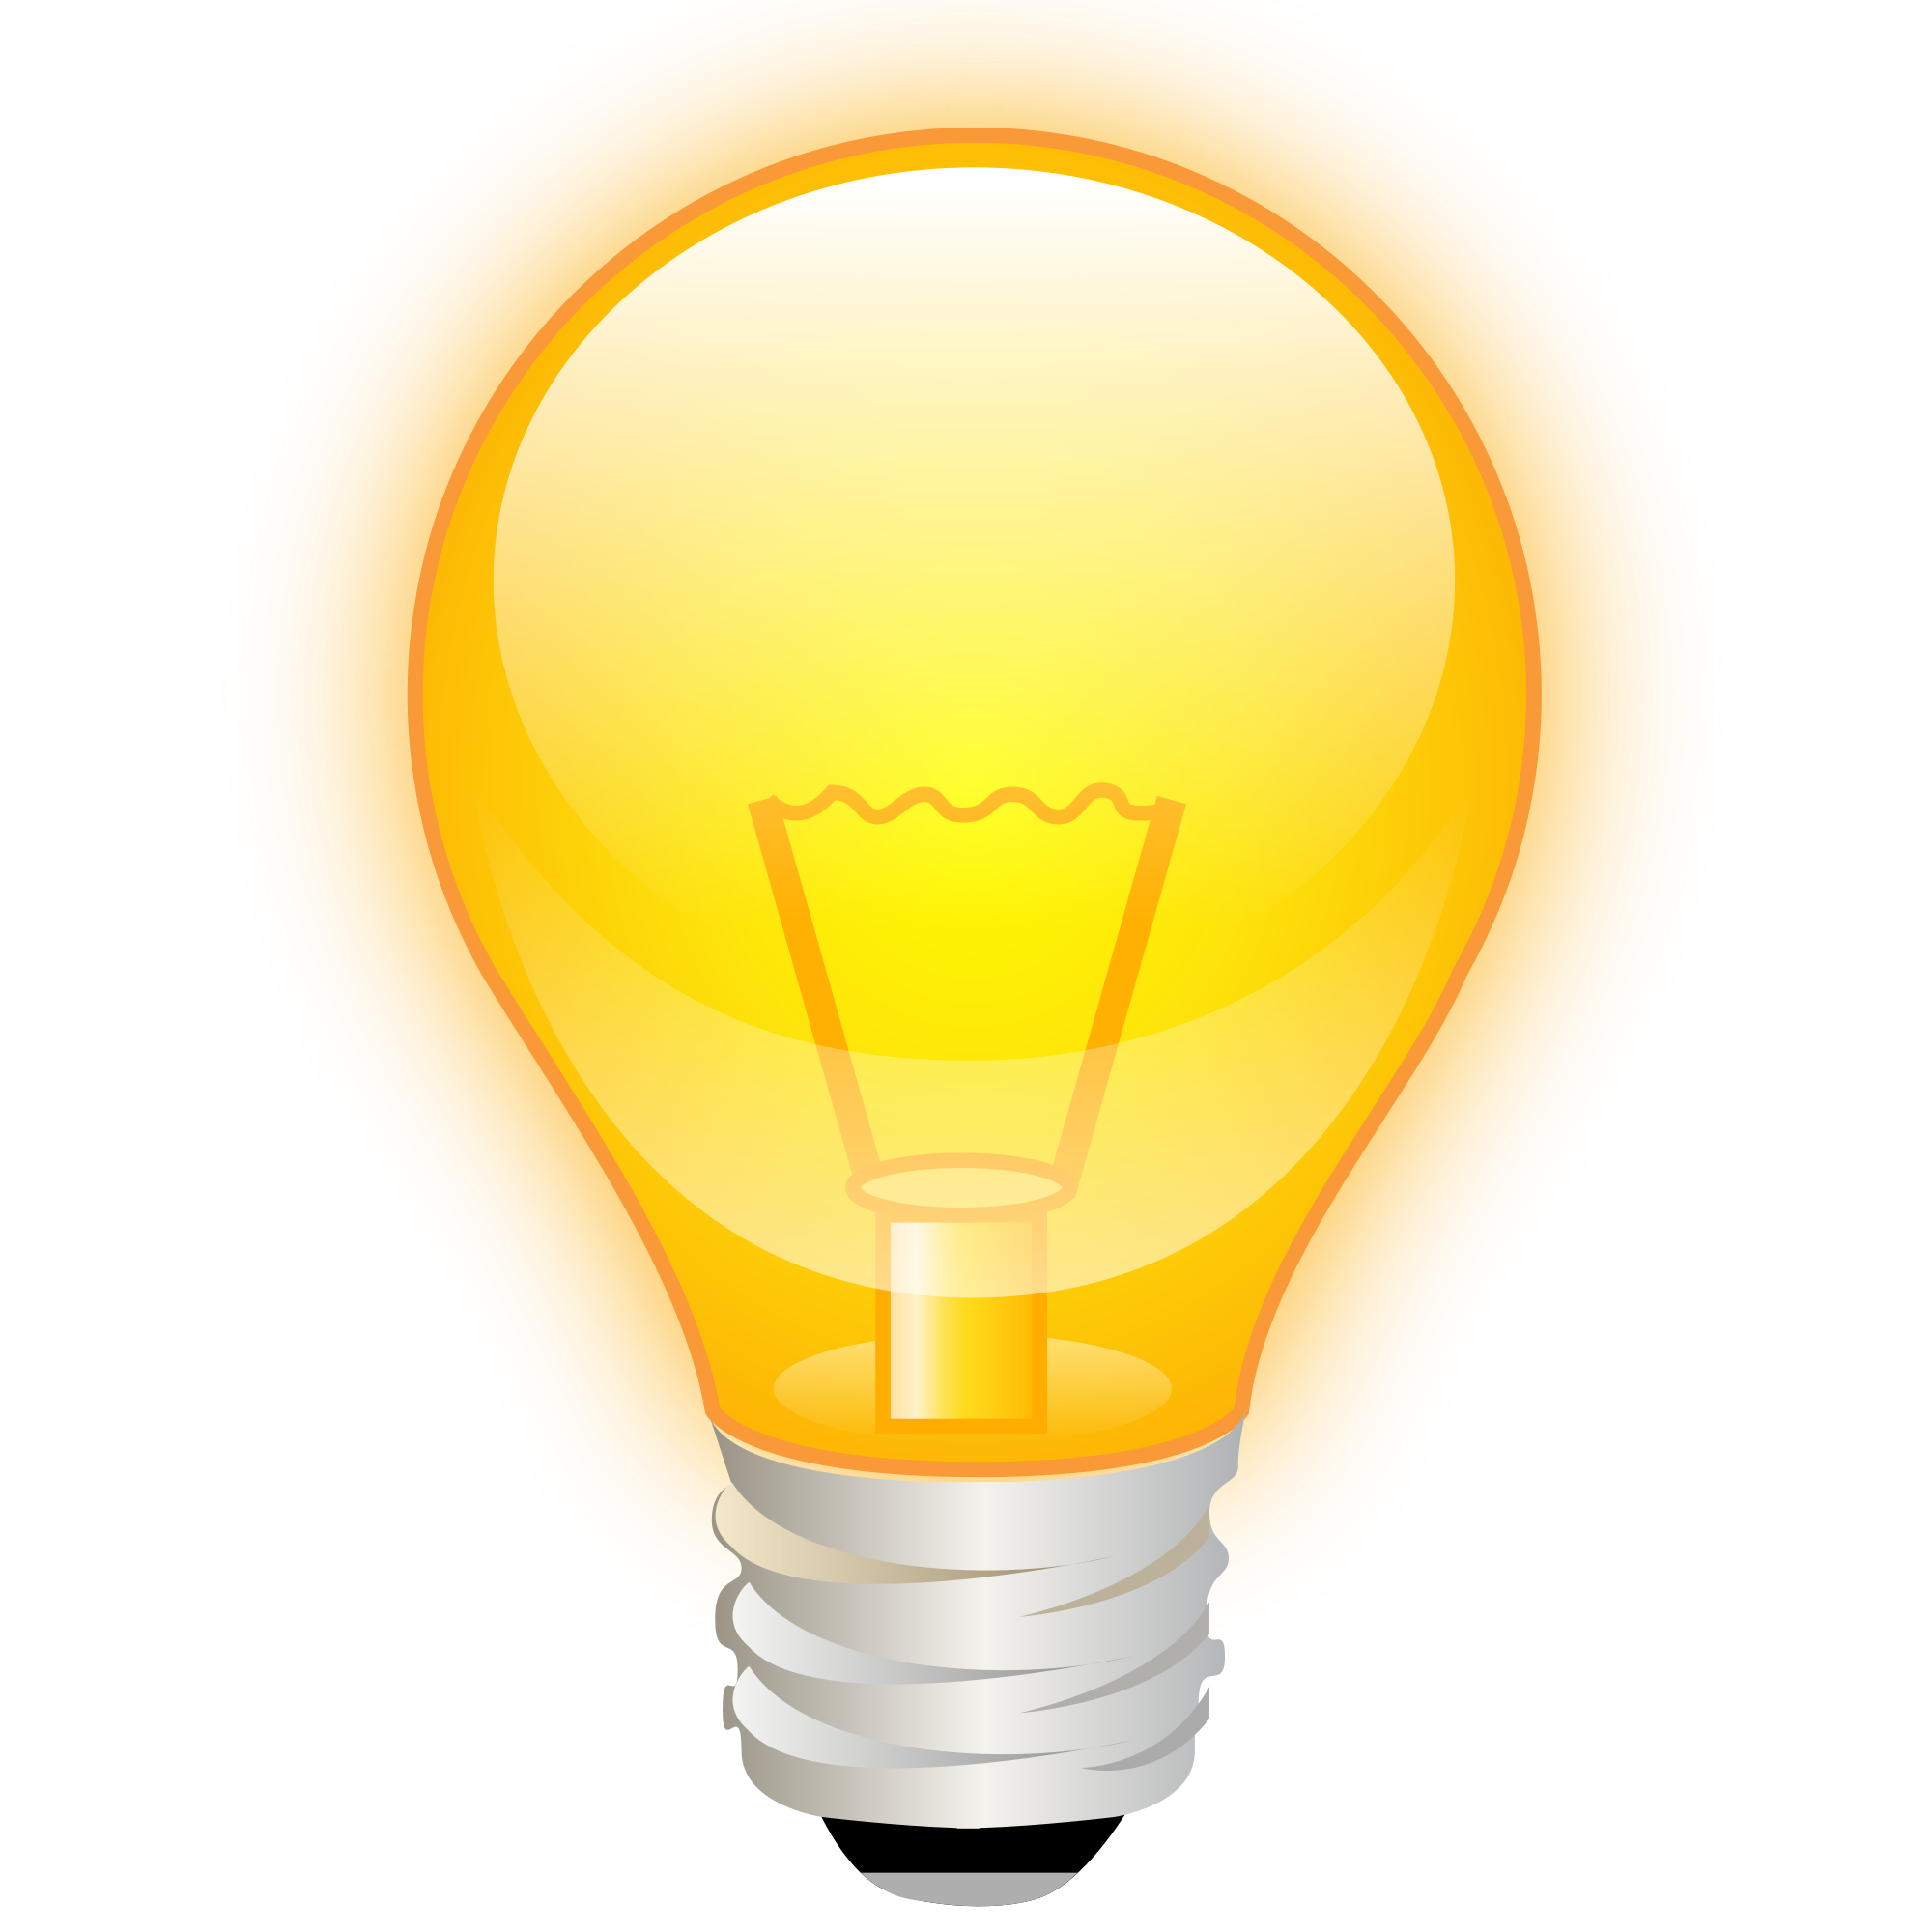 Hd light bulb transparent. Lightbulb png jpg freeuse